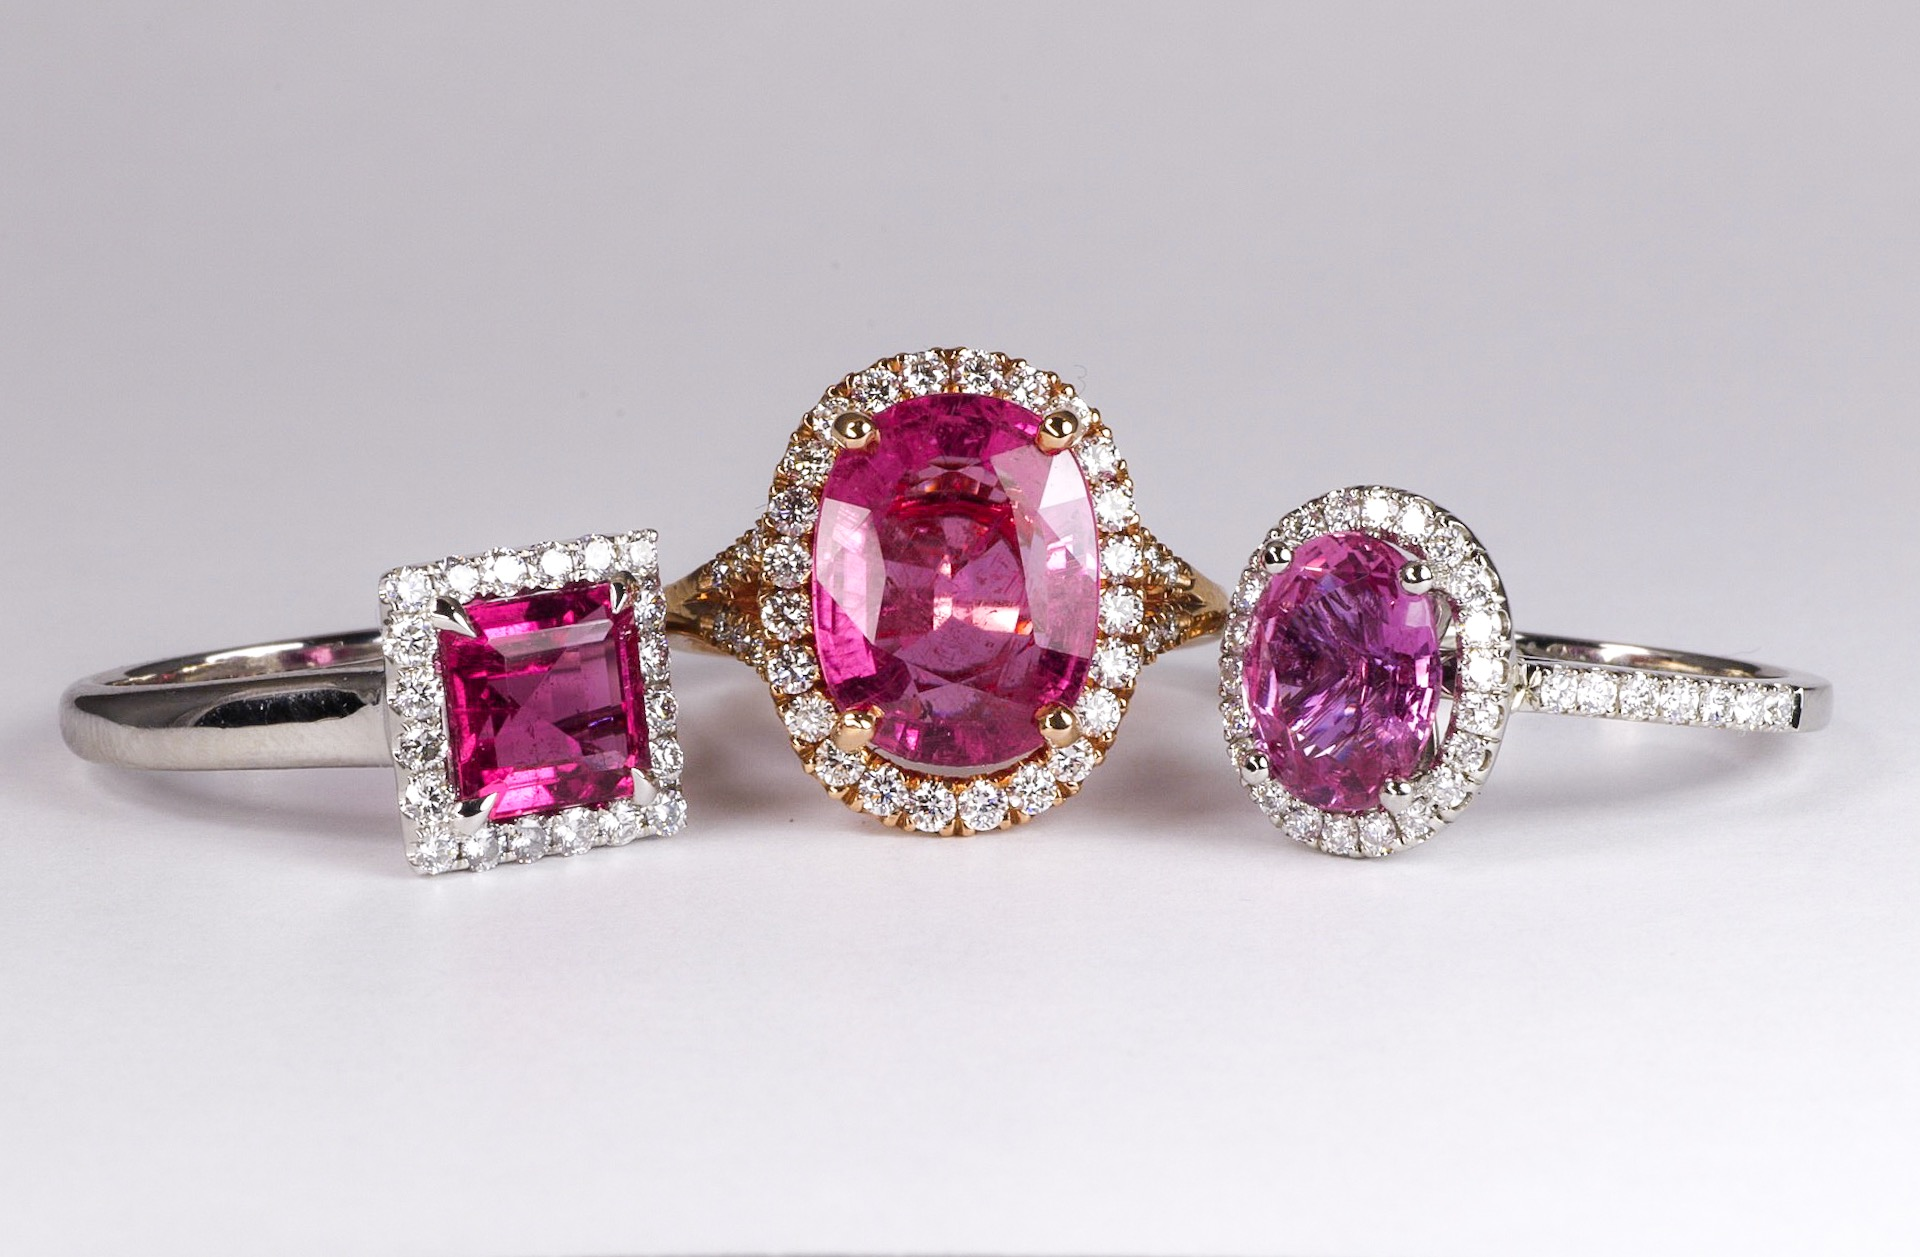 Middle and left - pink tourmaline and diamond. Right - pink sapphire and diamond.